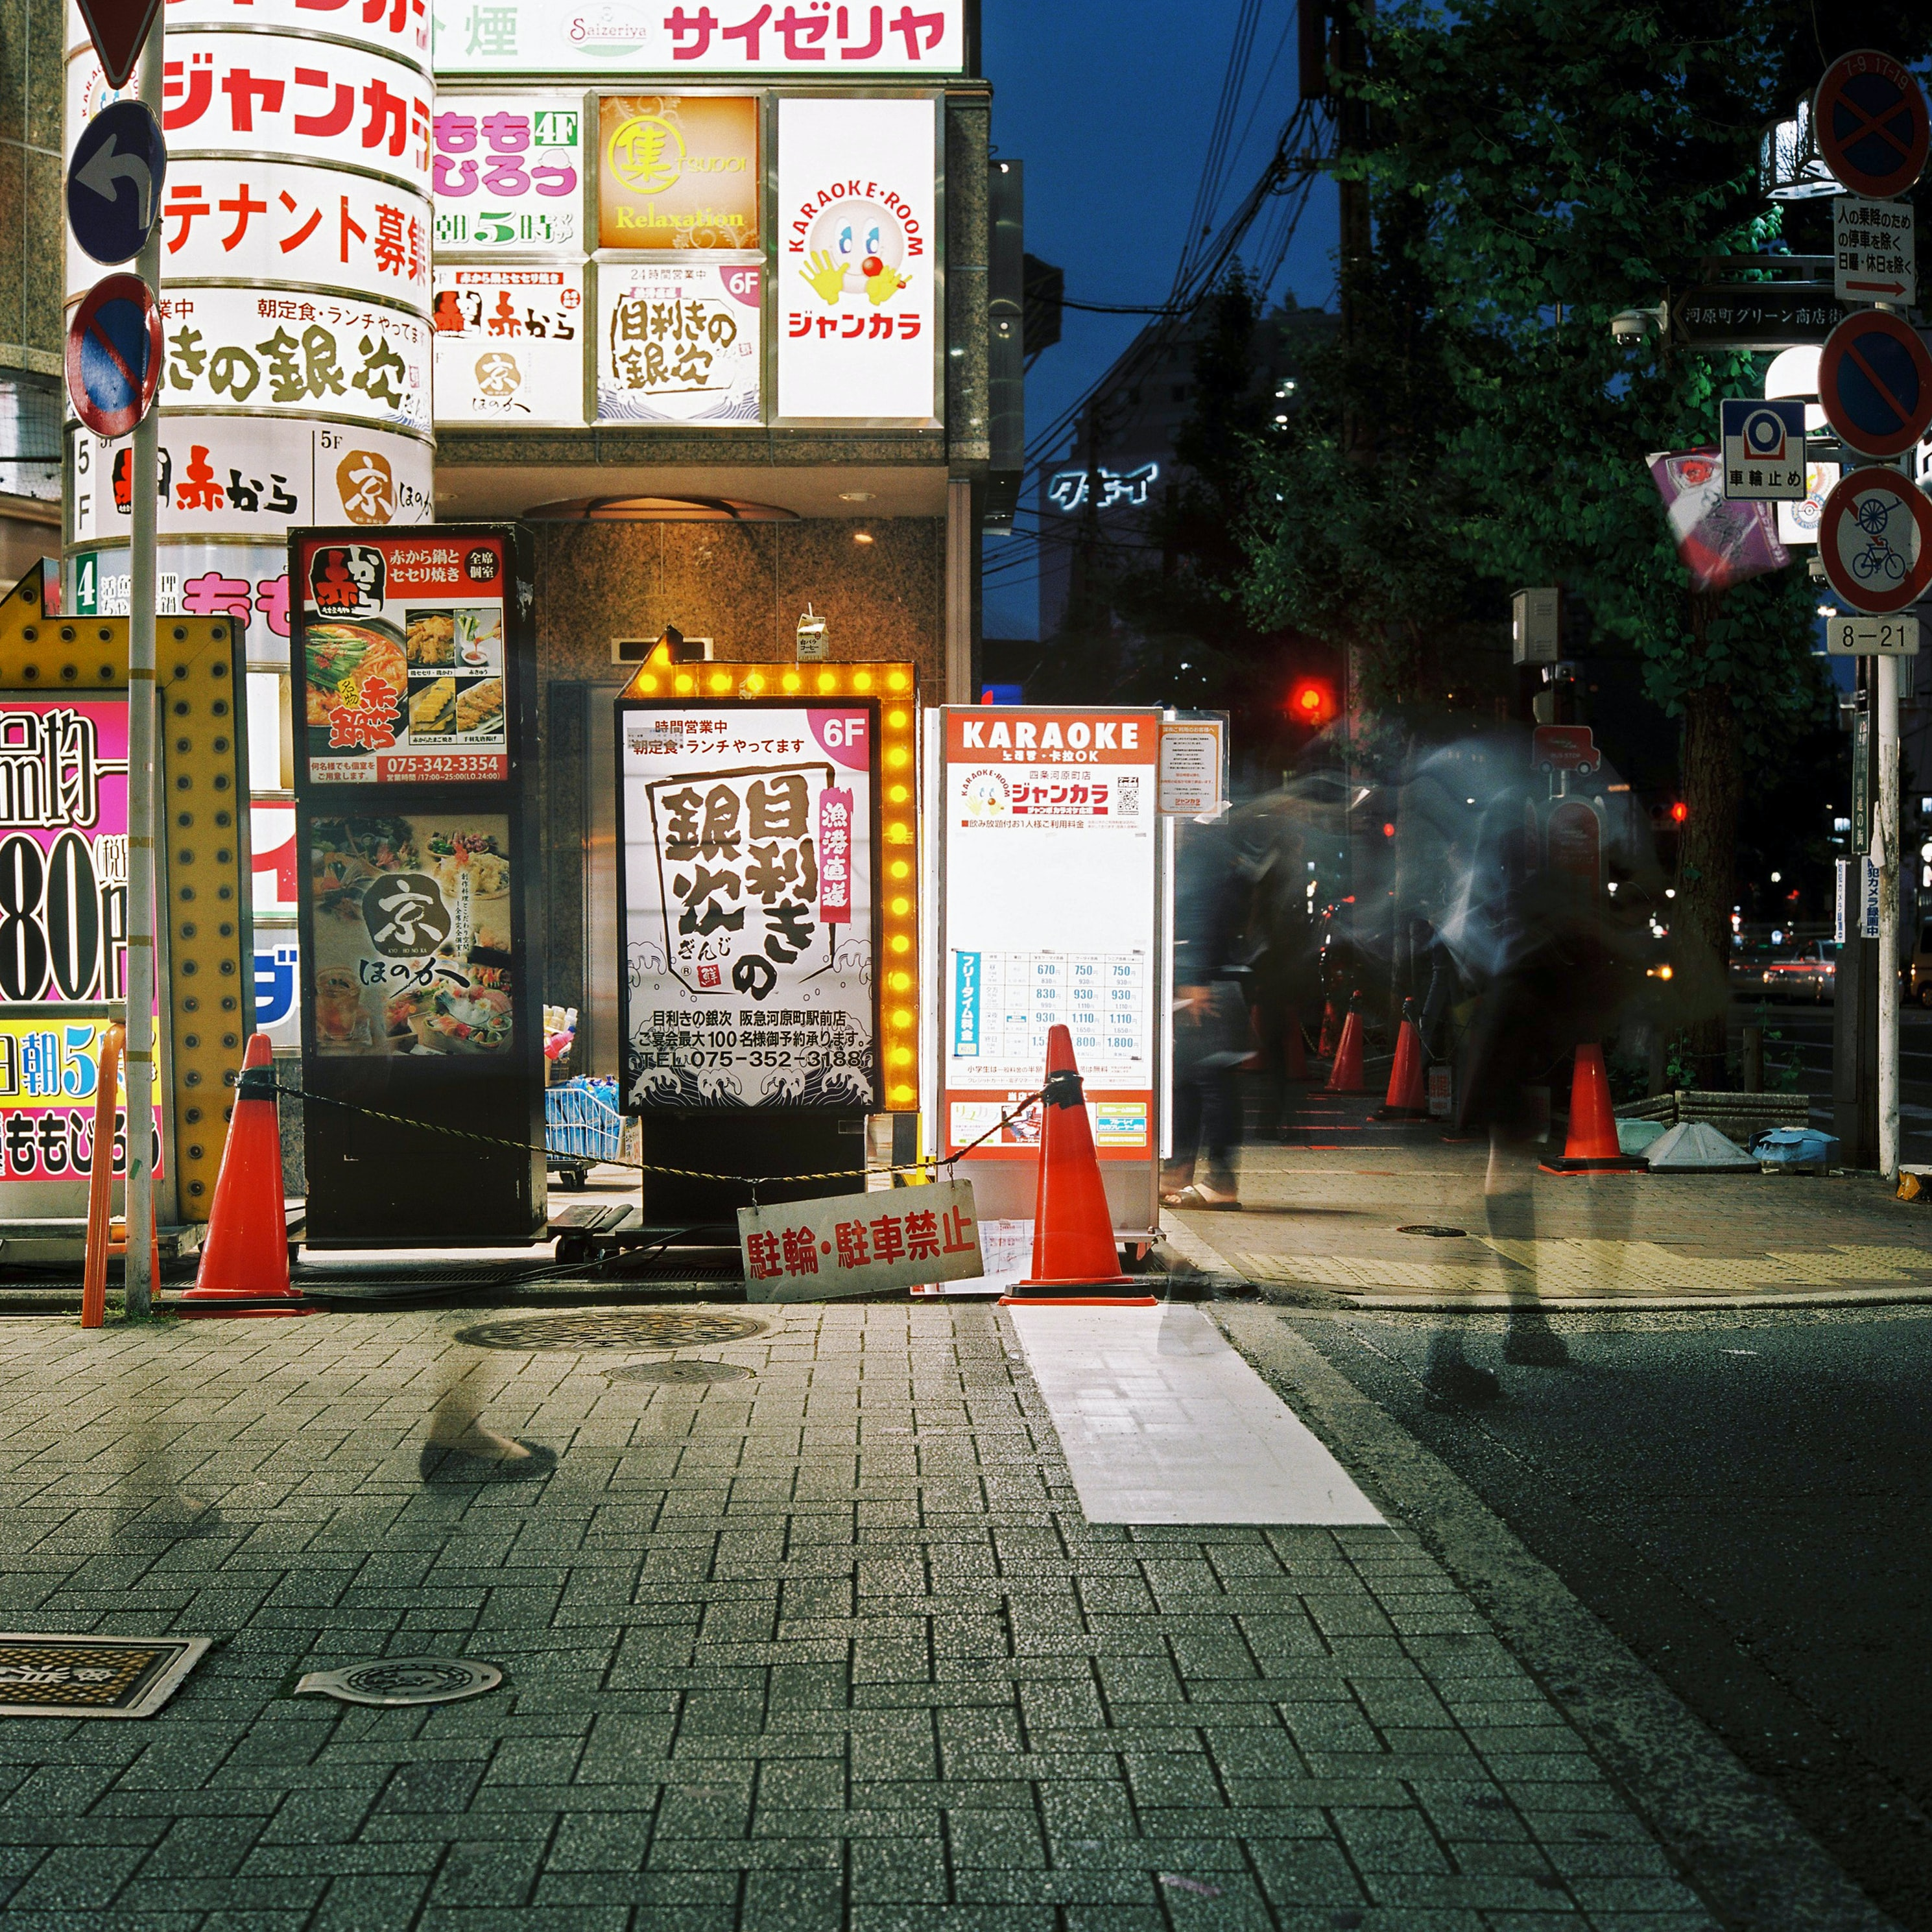 A long-exposure shot of bright advertisements on a building wall in Kyoto at night